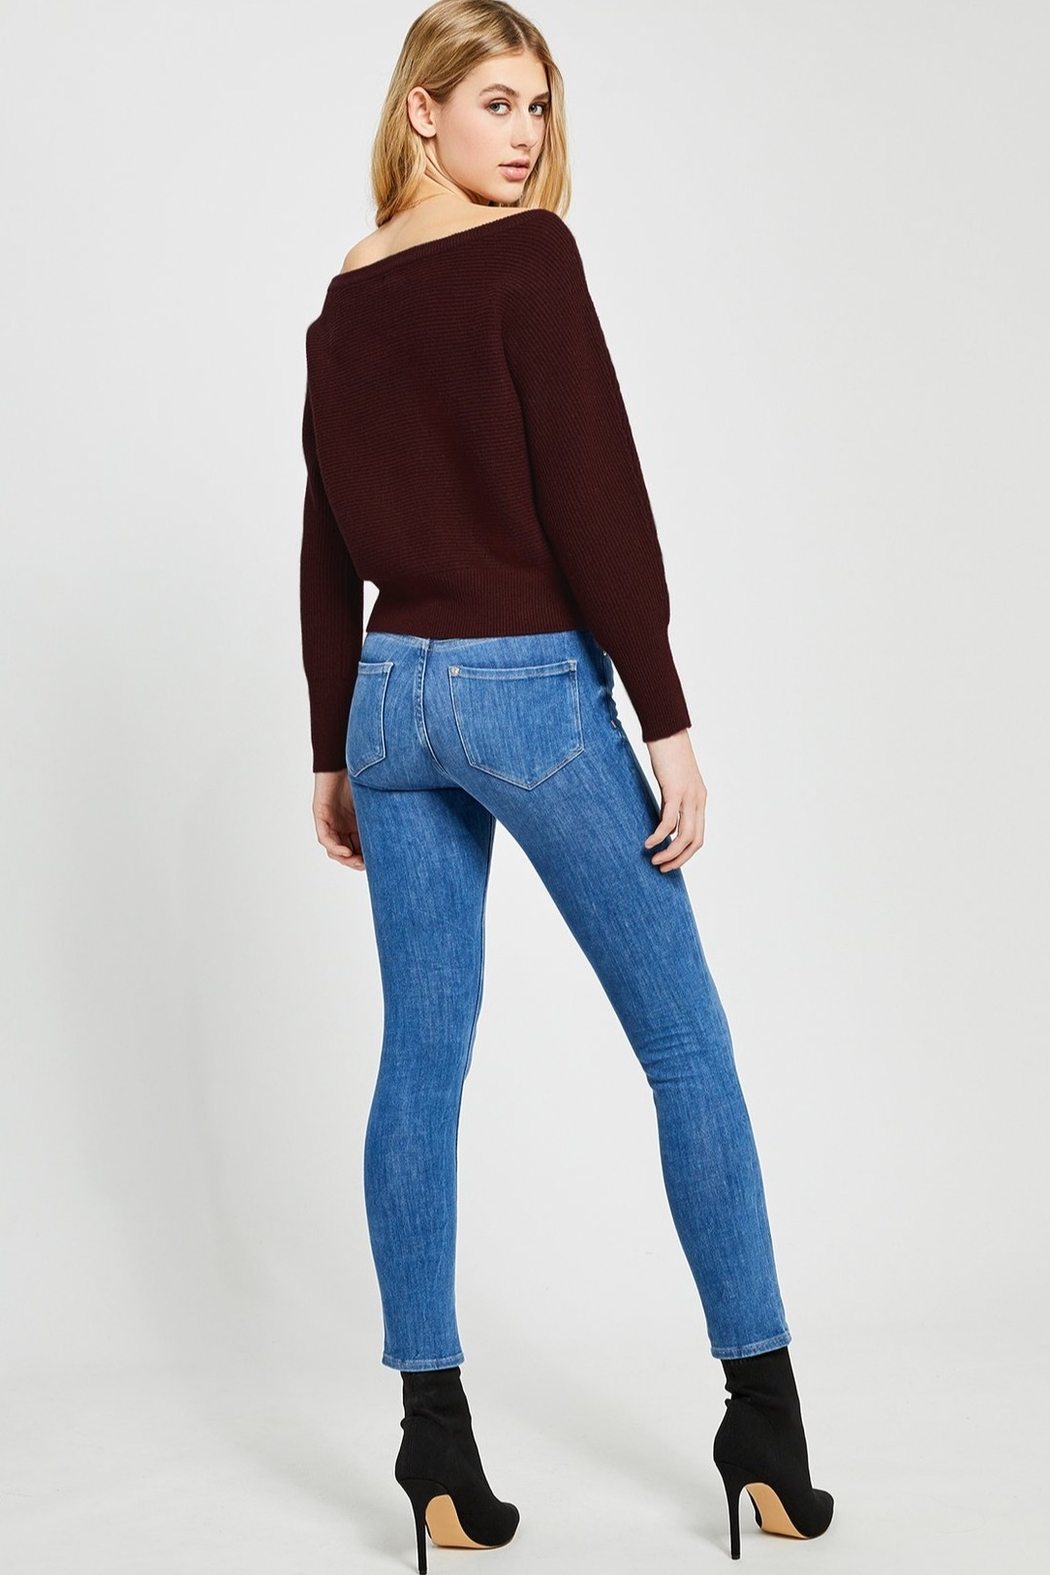 Gentle Fawn Camillo Off Shoulder Sweater - Side Cropped Image